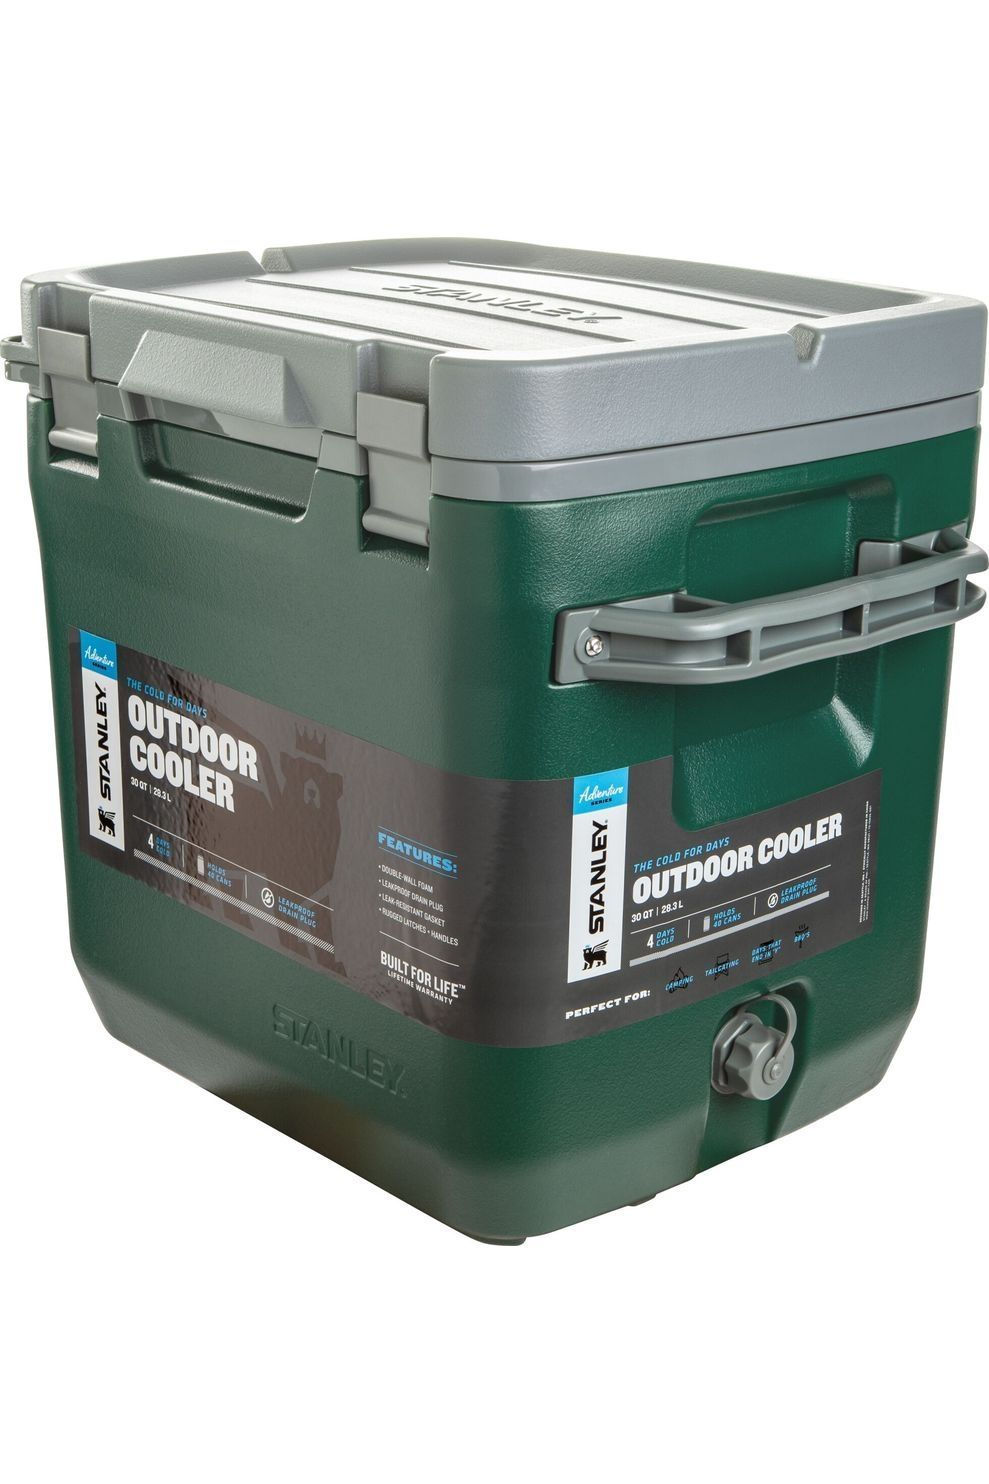 Stanley Koelbox The Cold For Days Outdoor Cooler 28,3L - Groen